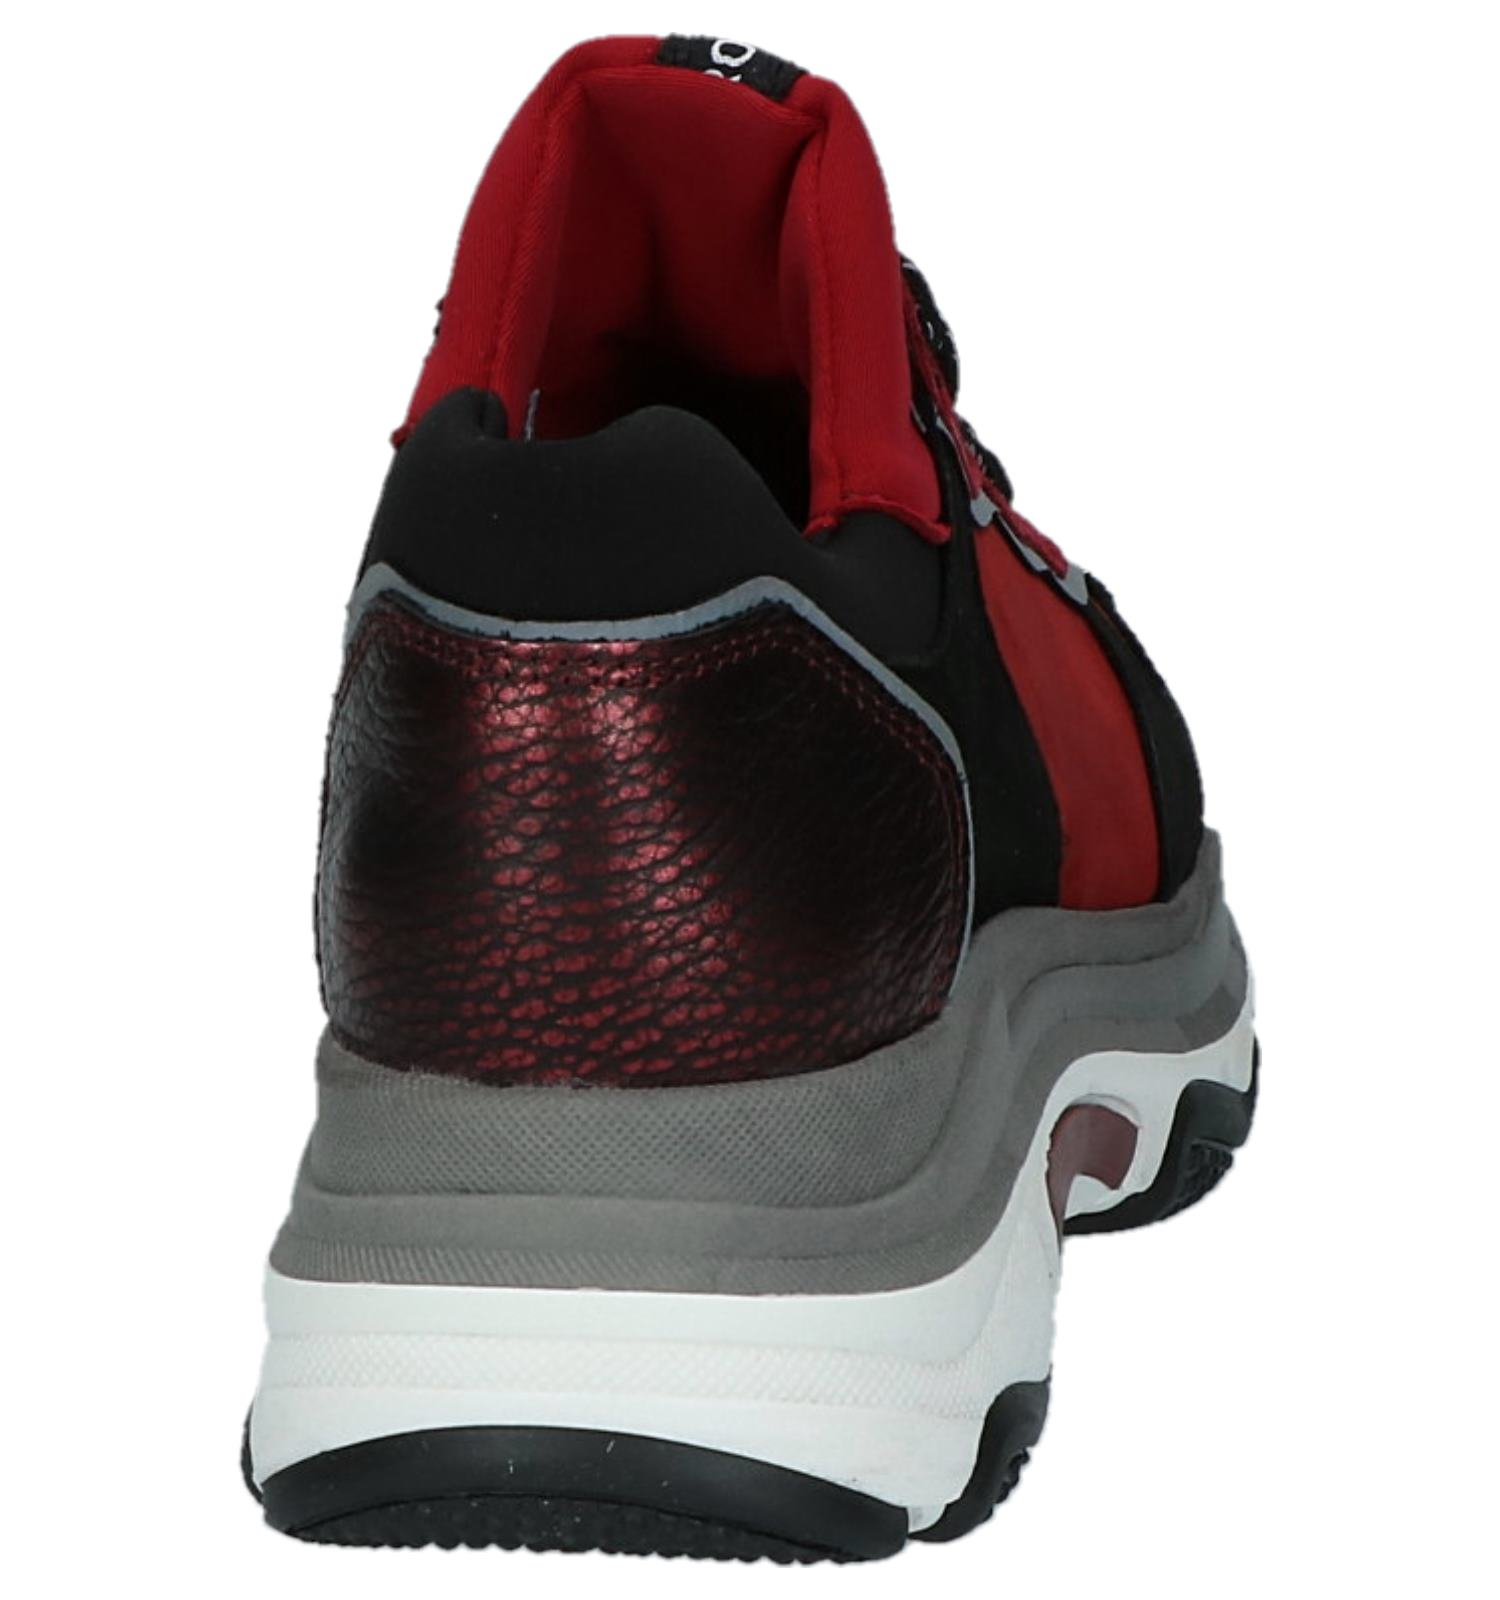 Bordeaux Sneakers Sneakers Bronx Bordeaux Bronx Sneakers Bordeaux Sneakers Bronx Bordeaux Sneakers Bordeaux Bronx Bronx Bordeaux yYbf7m6Igv